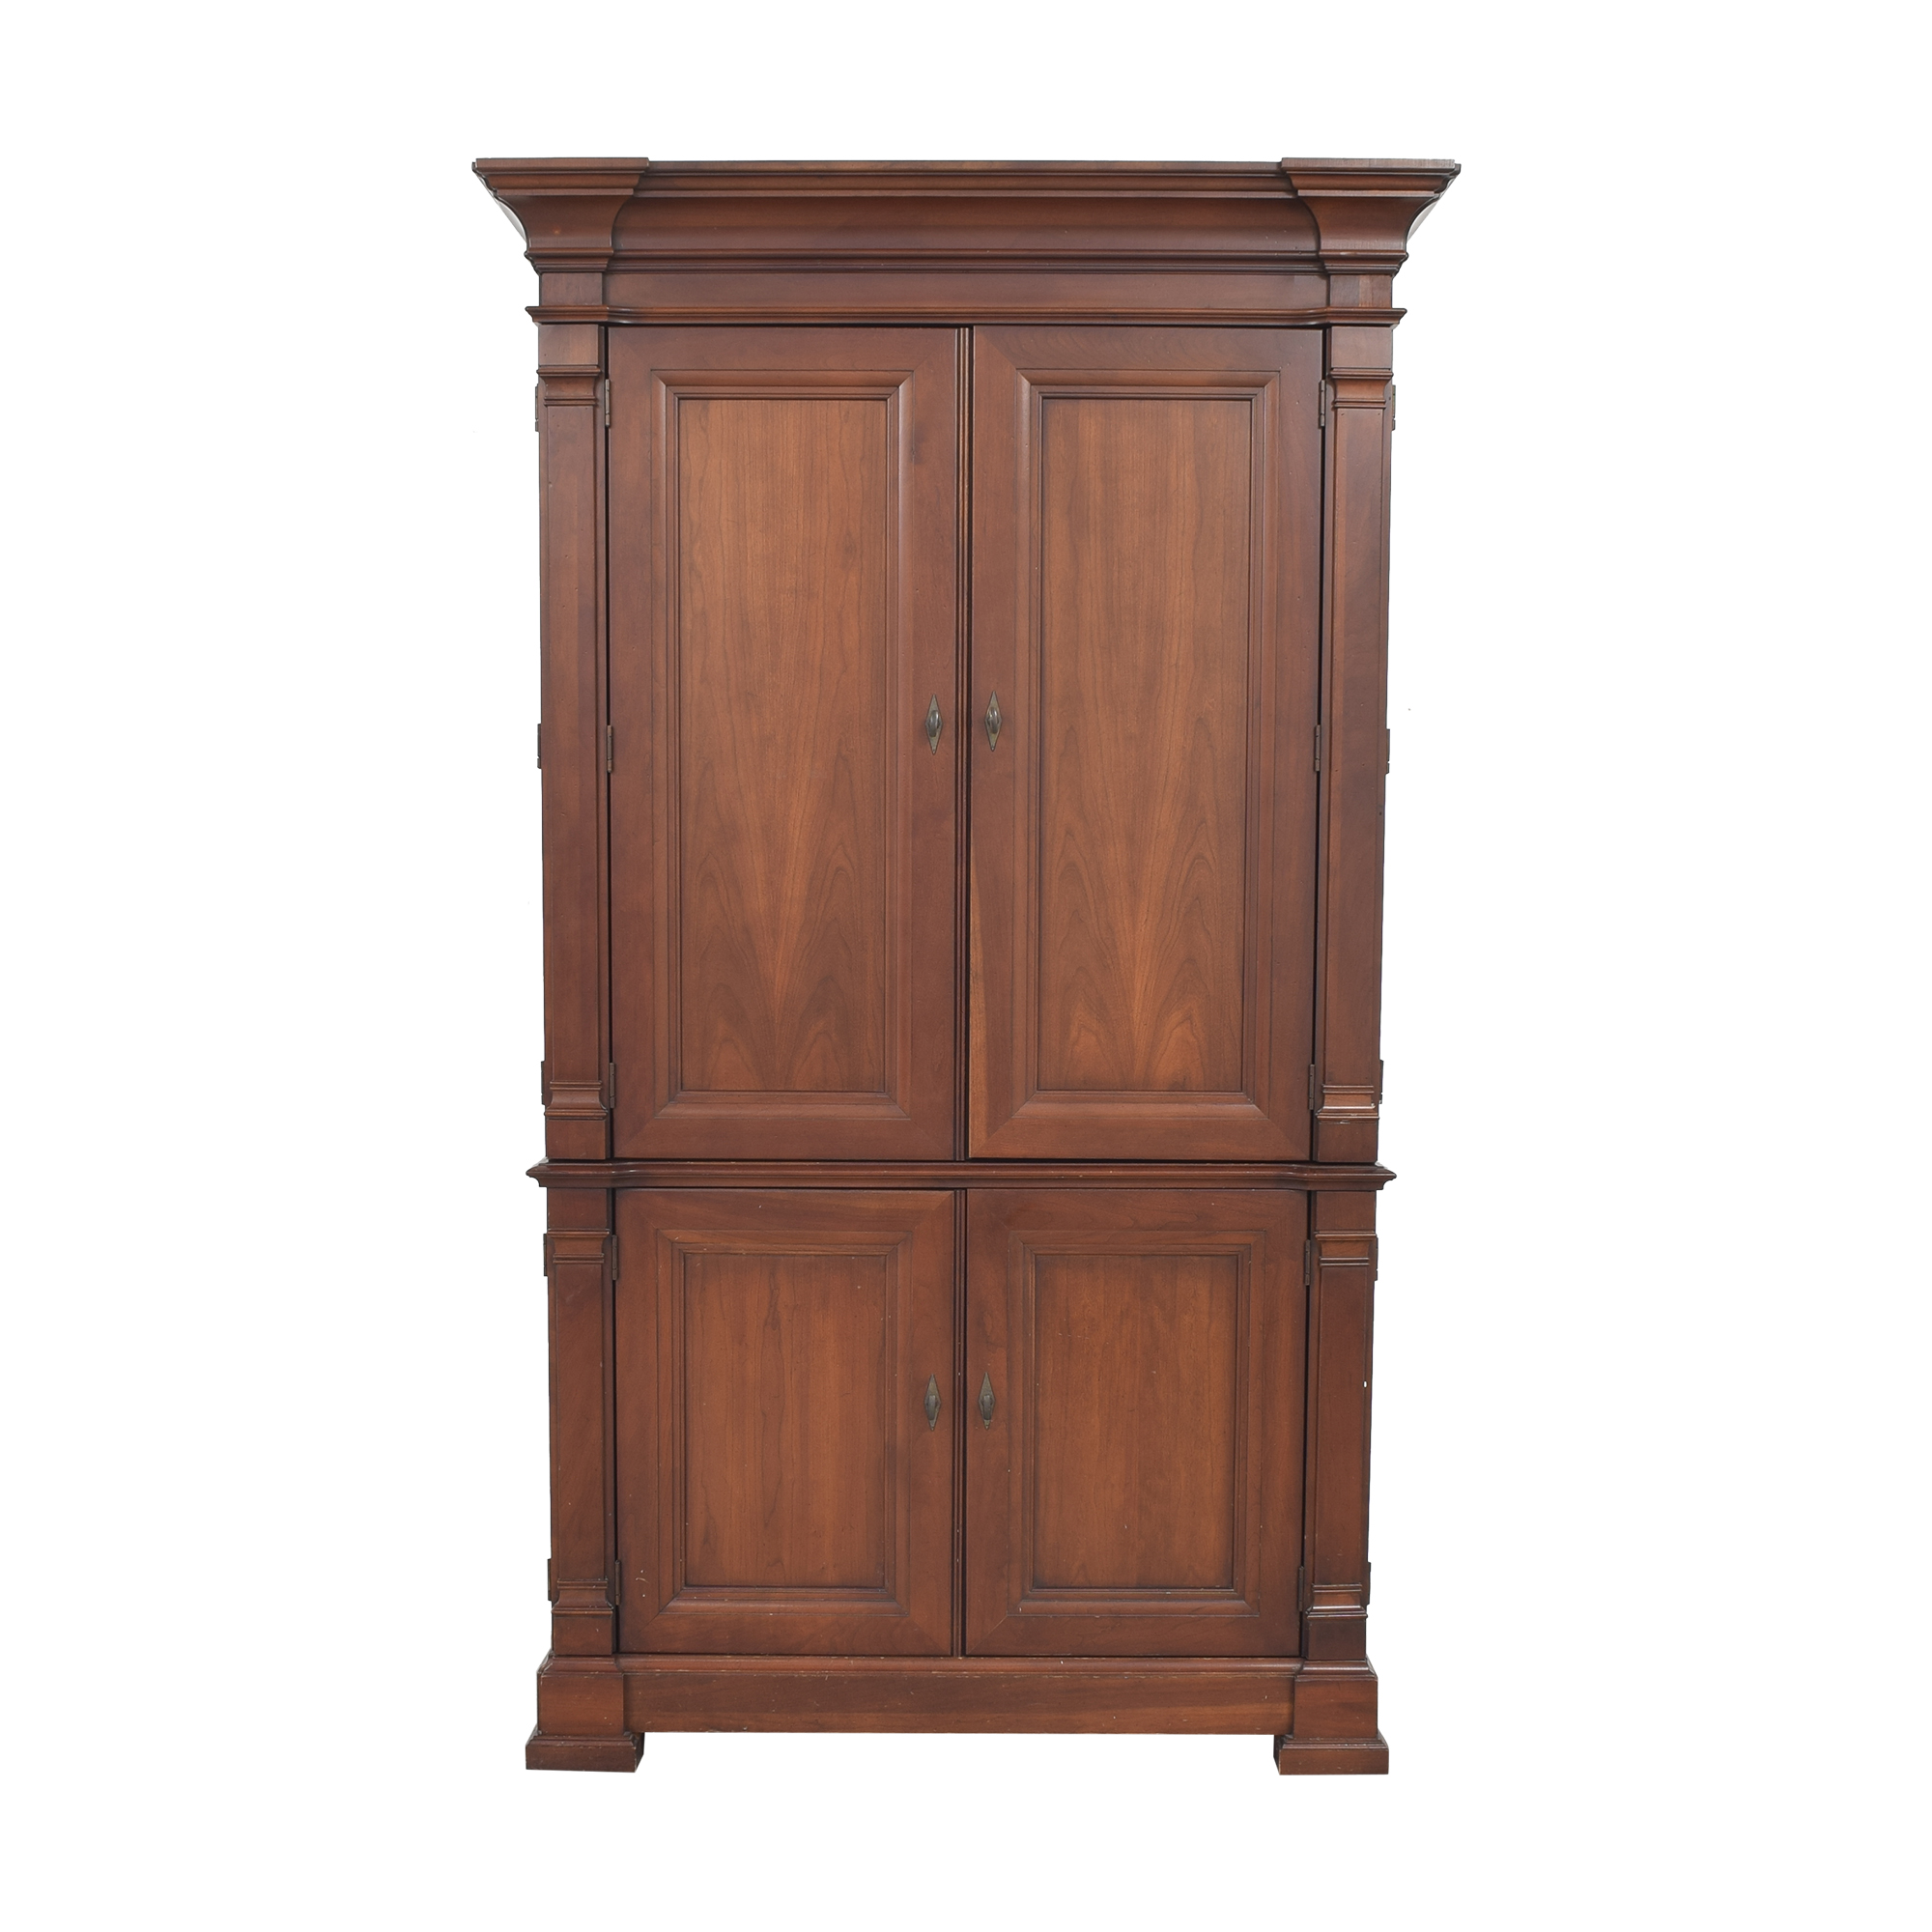 Stickley Furniture Stickley Furniture Audi Media Armoire dimensions